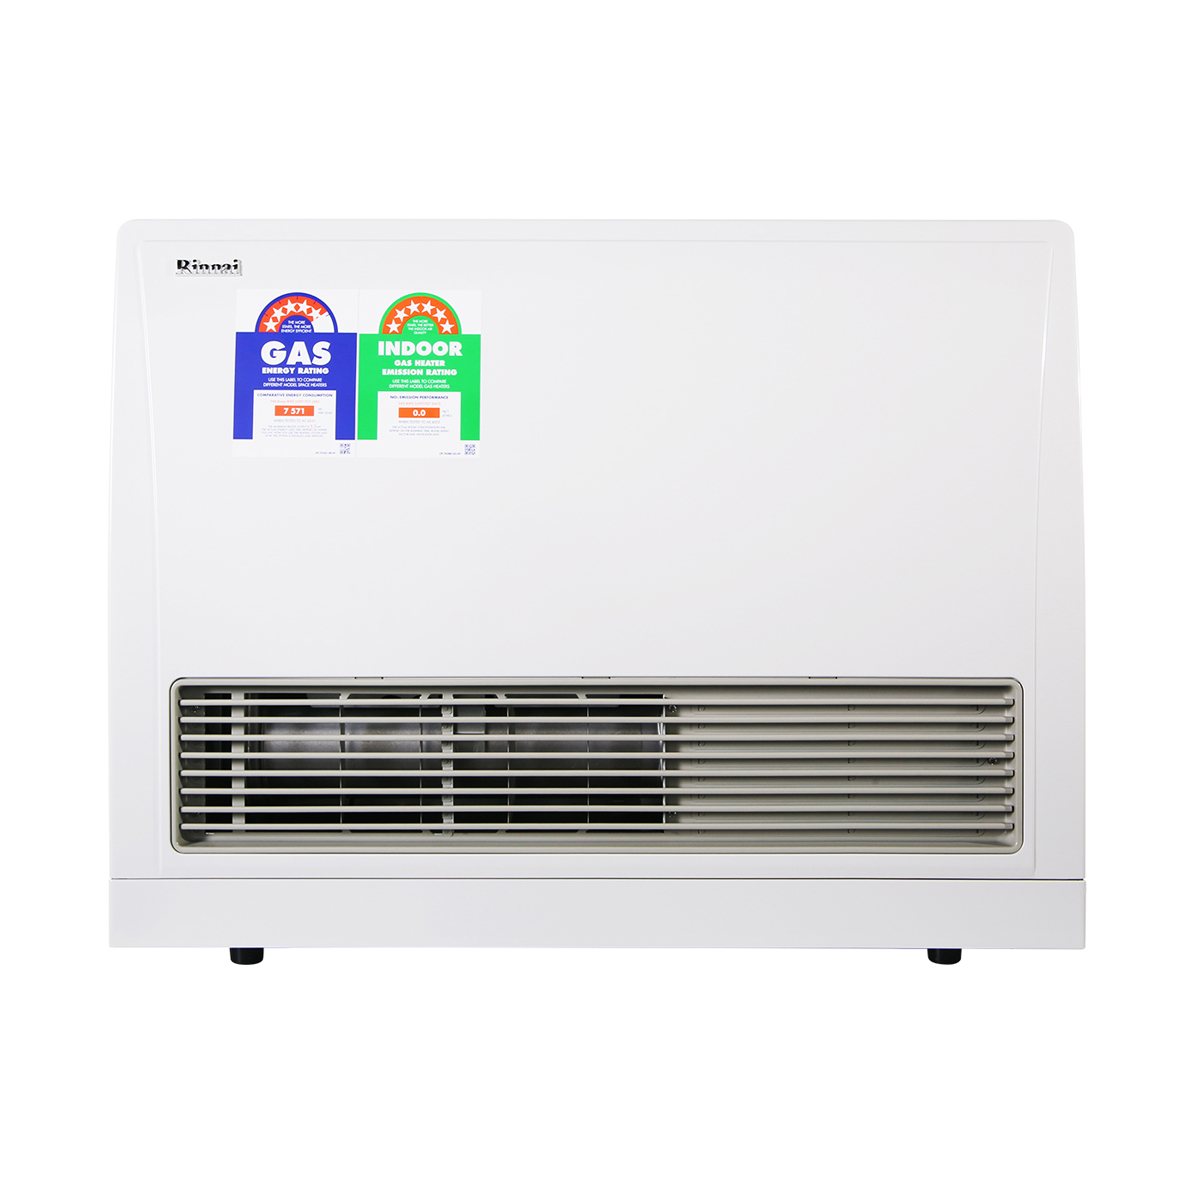 Shop for Heating & Cooling online with Electro Seconds Appliances #15B650